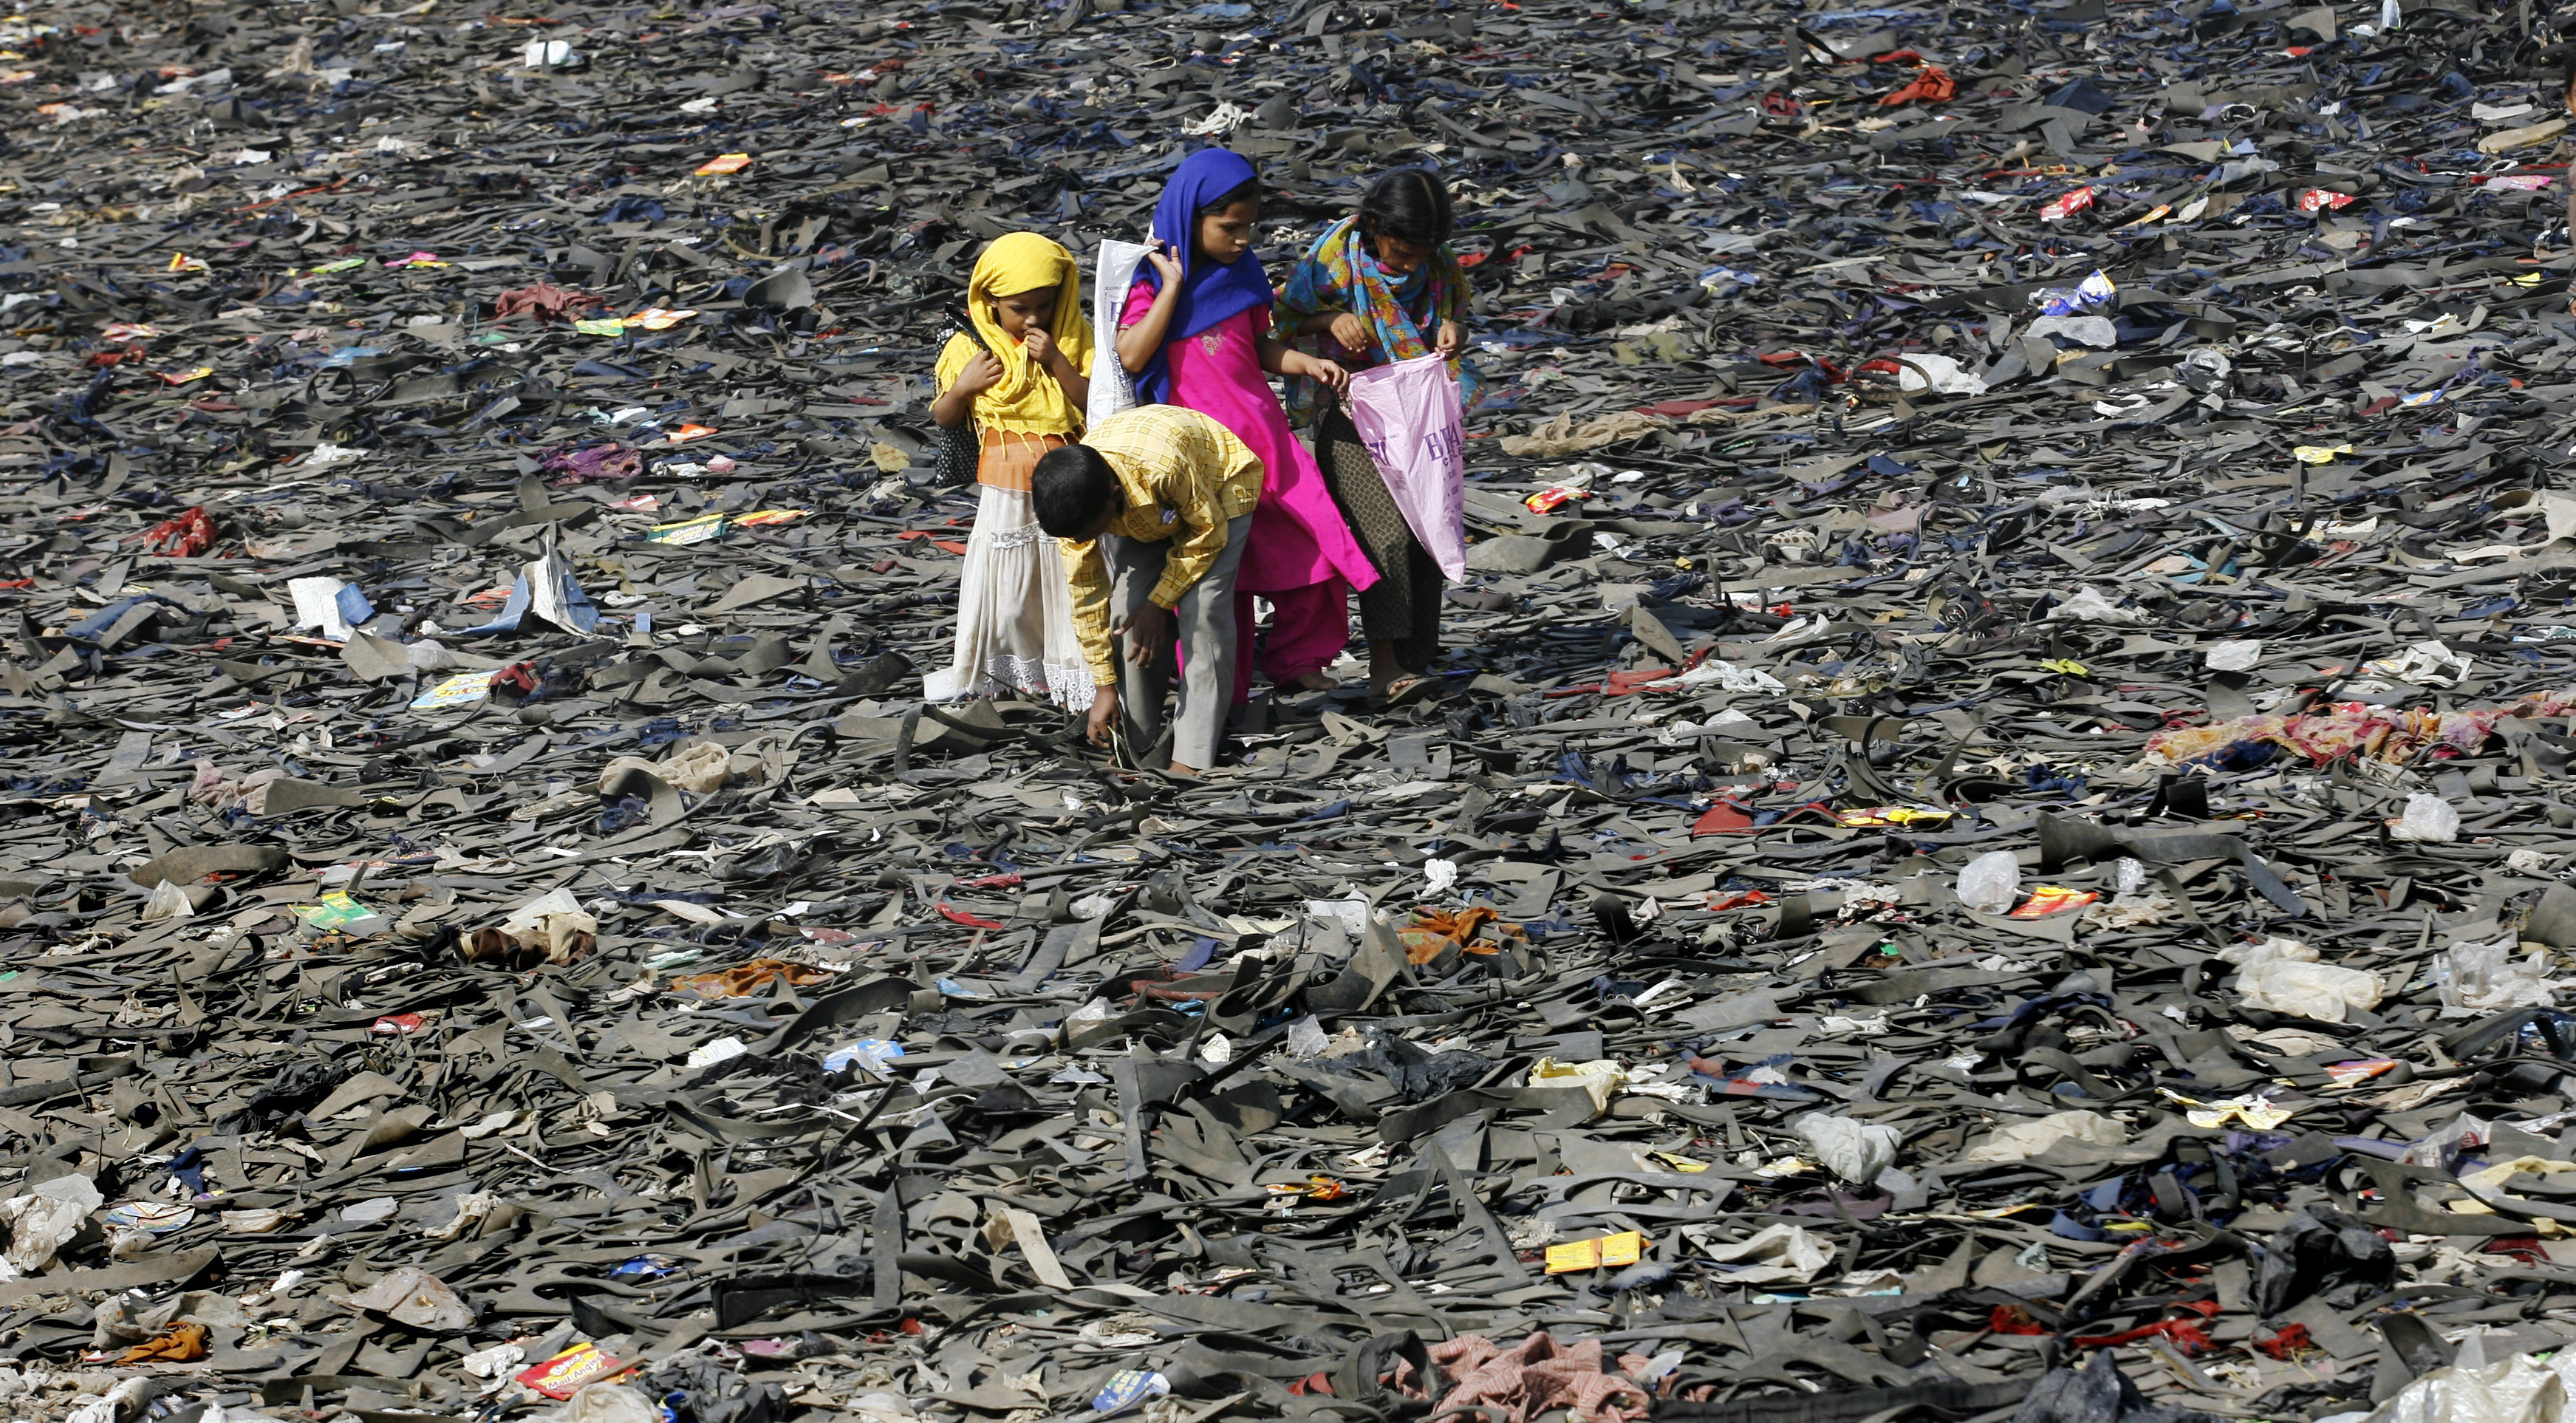 Slum children walk through a dried-up creek covered with wasted rubber sheets in Mumbai November 23, 2009. More than a third of India's population survives on less than one dollar a day, according to a 2007 United Nations report. REUTERS/Arko Datta (INDIA ENVIRONMENT SOCIETY IMAGES OF THE DAY) - RTXR1HE